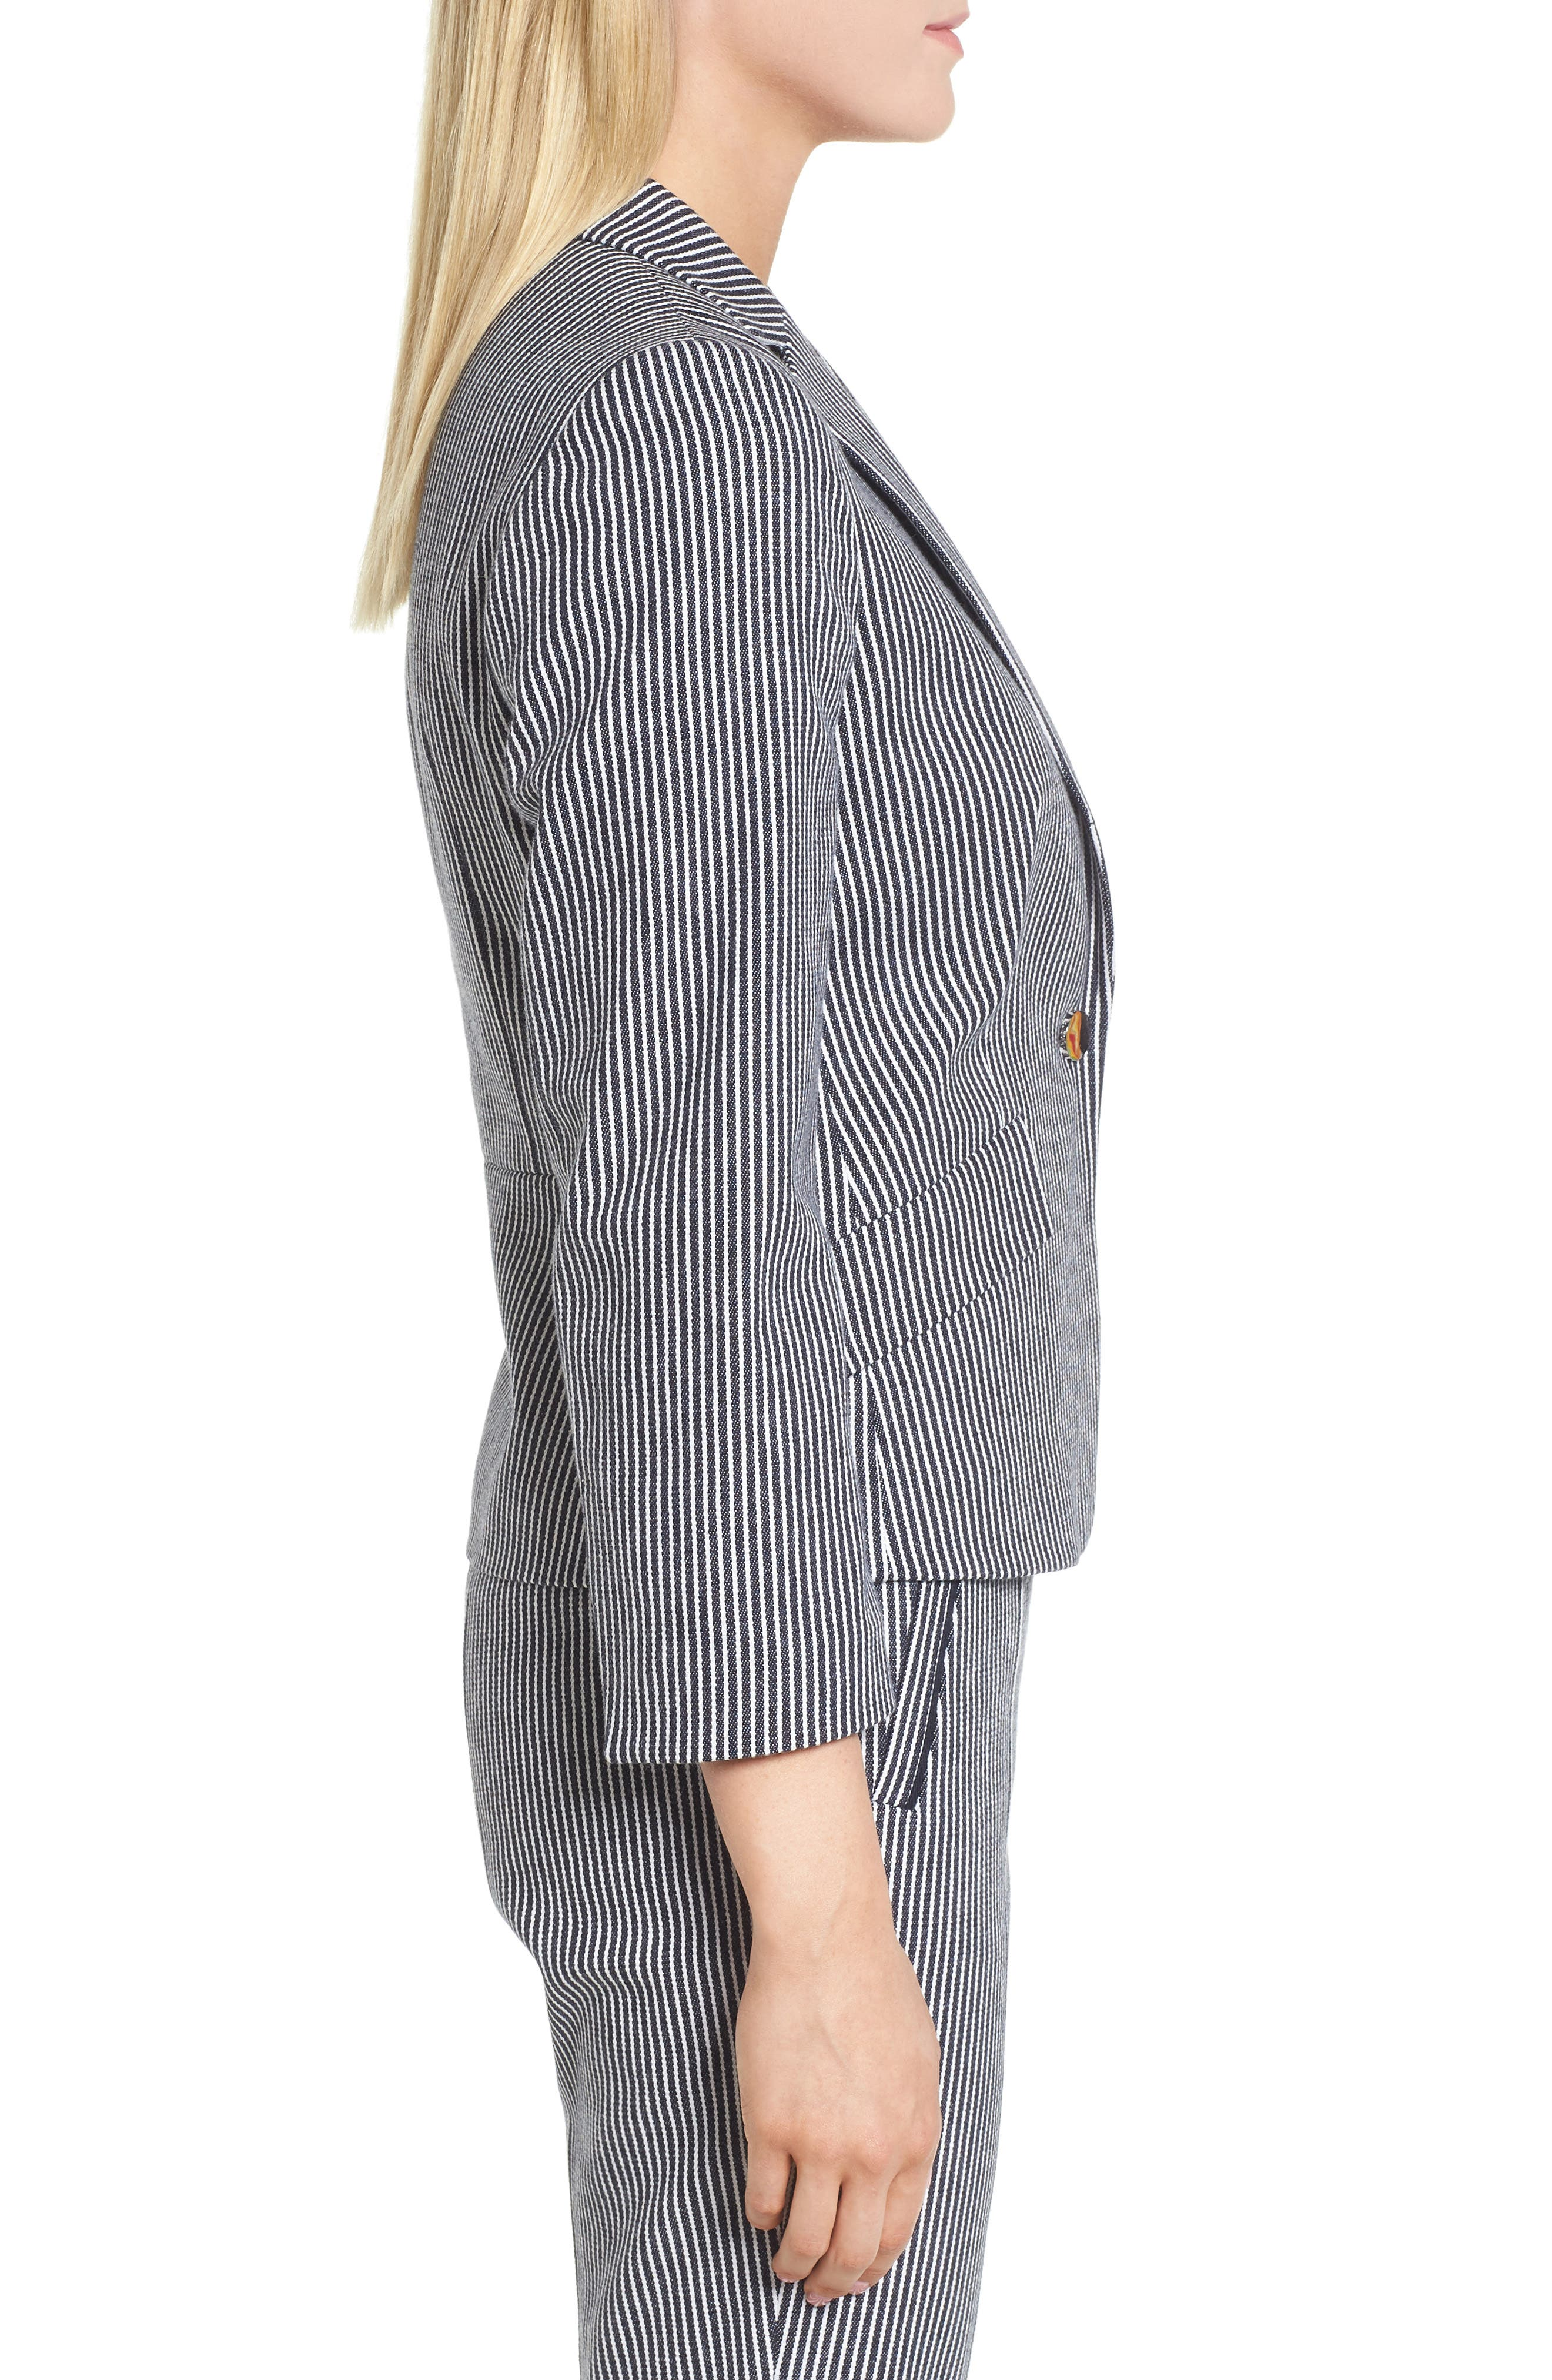 Katemika Stripe Stretch Cotton Suit Jacket,                             Alternate thumbnail 3, color,                             461